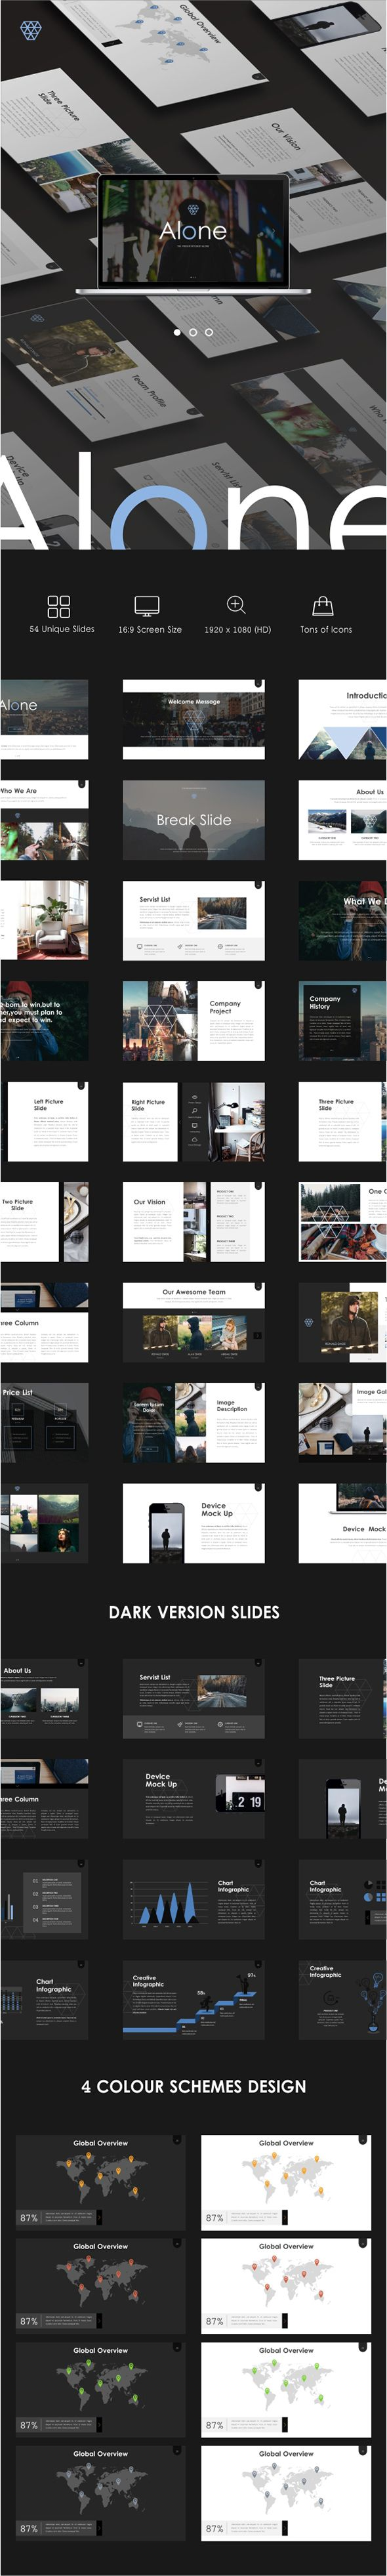 Alone Powerpoint Template - #Business #PowerPoint #Templates Download here: https://graphicriver.net/item/alone-powerpoint-template/19291503?ref=alena994